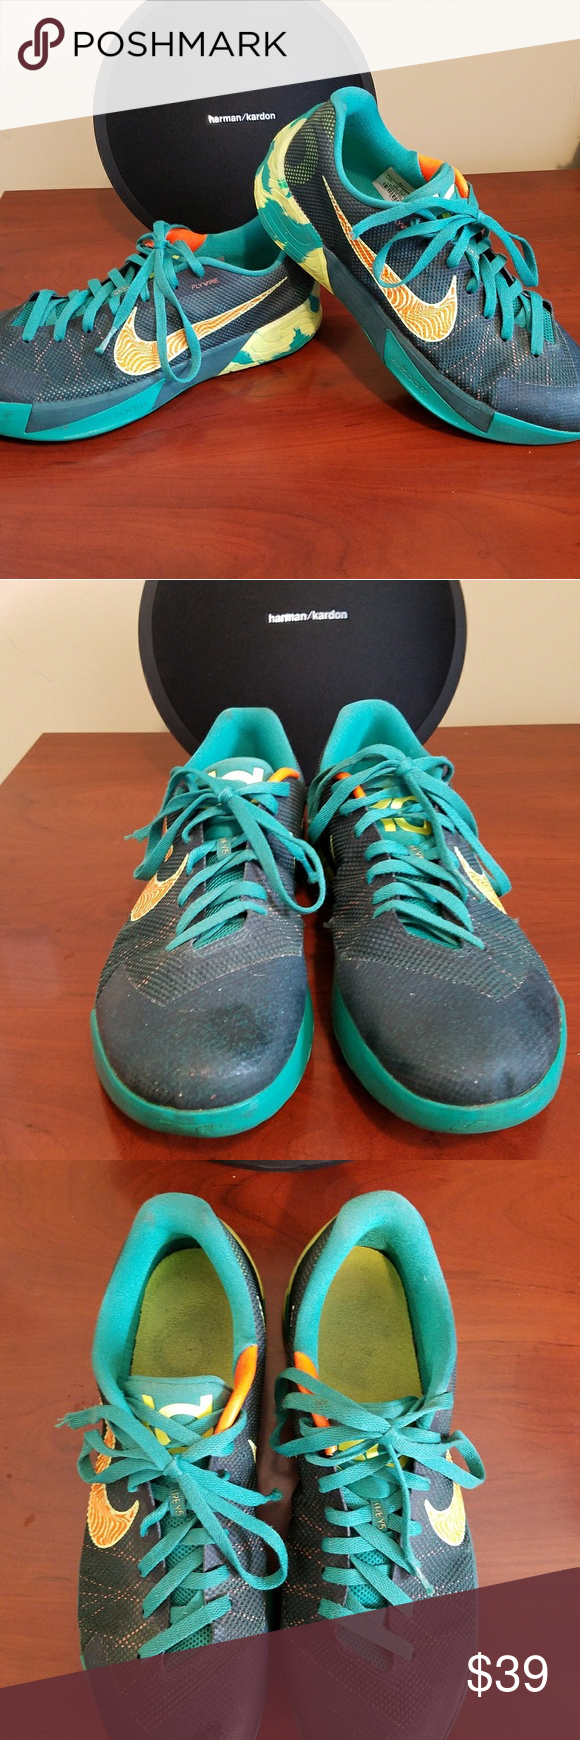 f1981e7afb0f Nike KD Trey 5 ll 13 s These are used